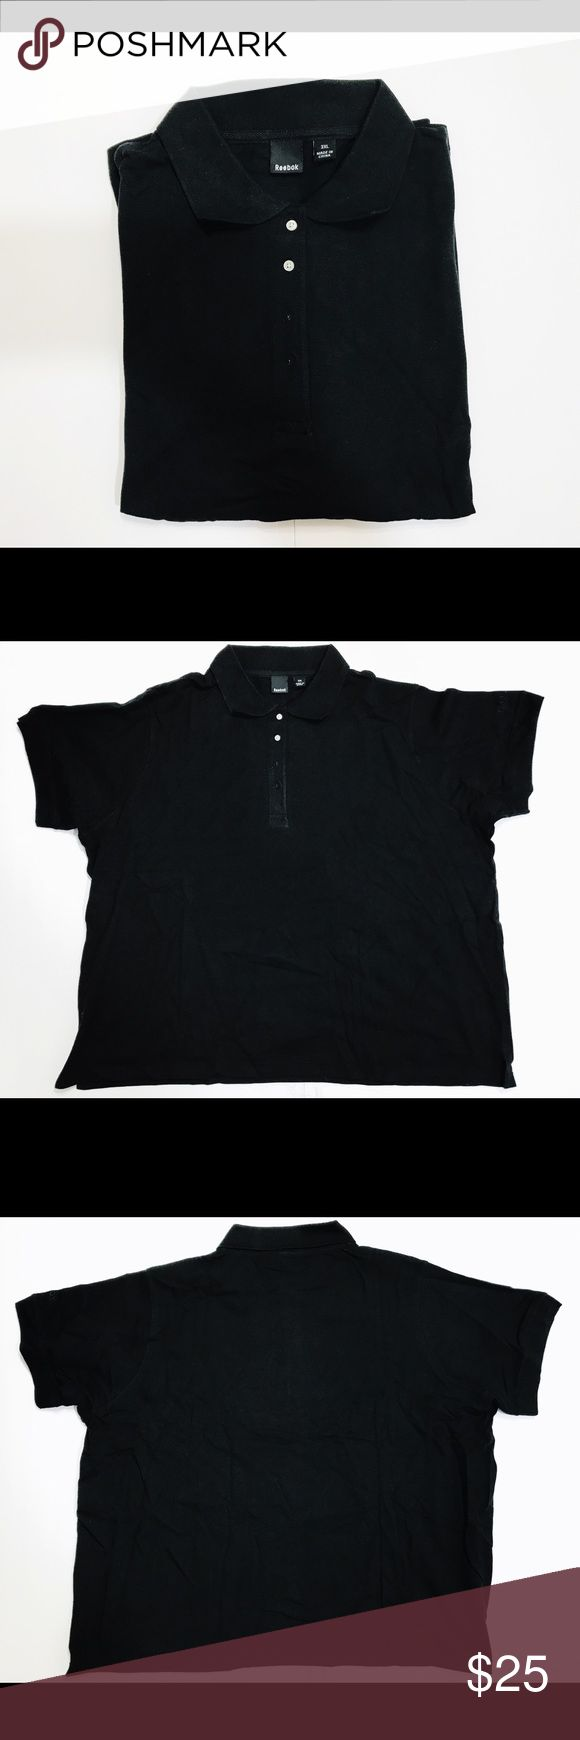 """New Men's Reebok Polo-shirt Black 3XL Shirt Men's Reebok Polo-shirt Black 3XL Shirt  Reebok Logo 100% cotton New no tags   Check measurements below for correct fit:    Measurements laid flat (approx):    Size 3XL:  Armpit to Armpit: 27 1/2""""   Sleeves: 9""""   Length: 26  1/2""""   I do my very best to accurately describe each item and if you need additional information,  please feel free to contact me.   I value your continued support and hope you will continue to enjoy the great bargains I offer…"""